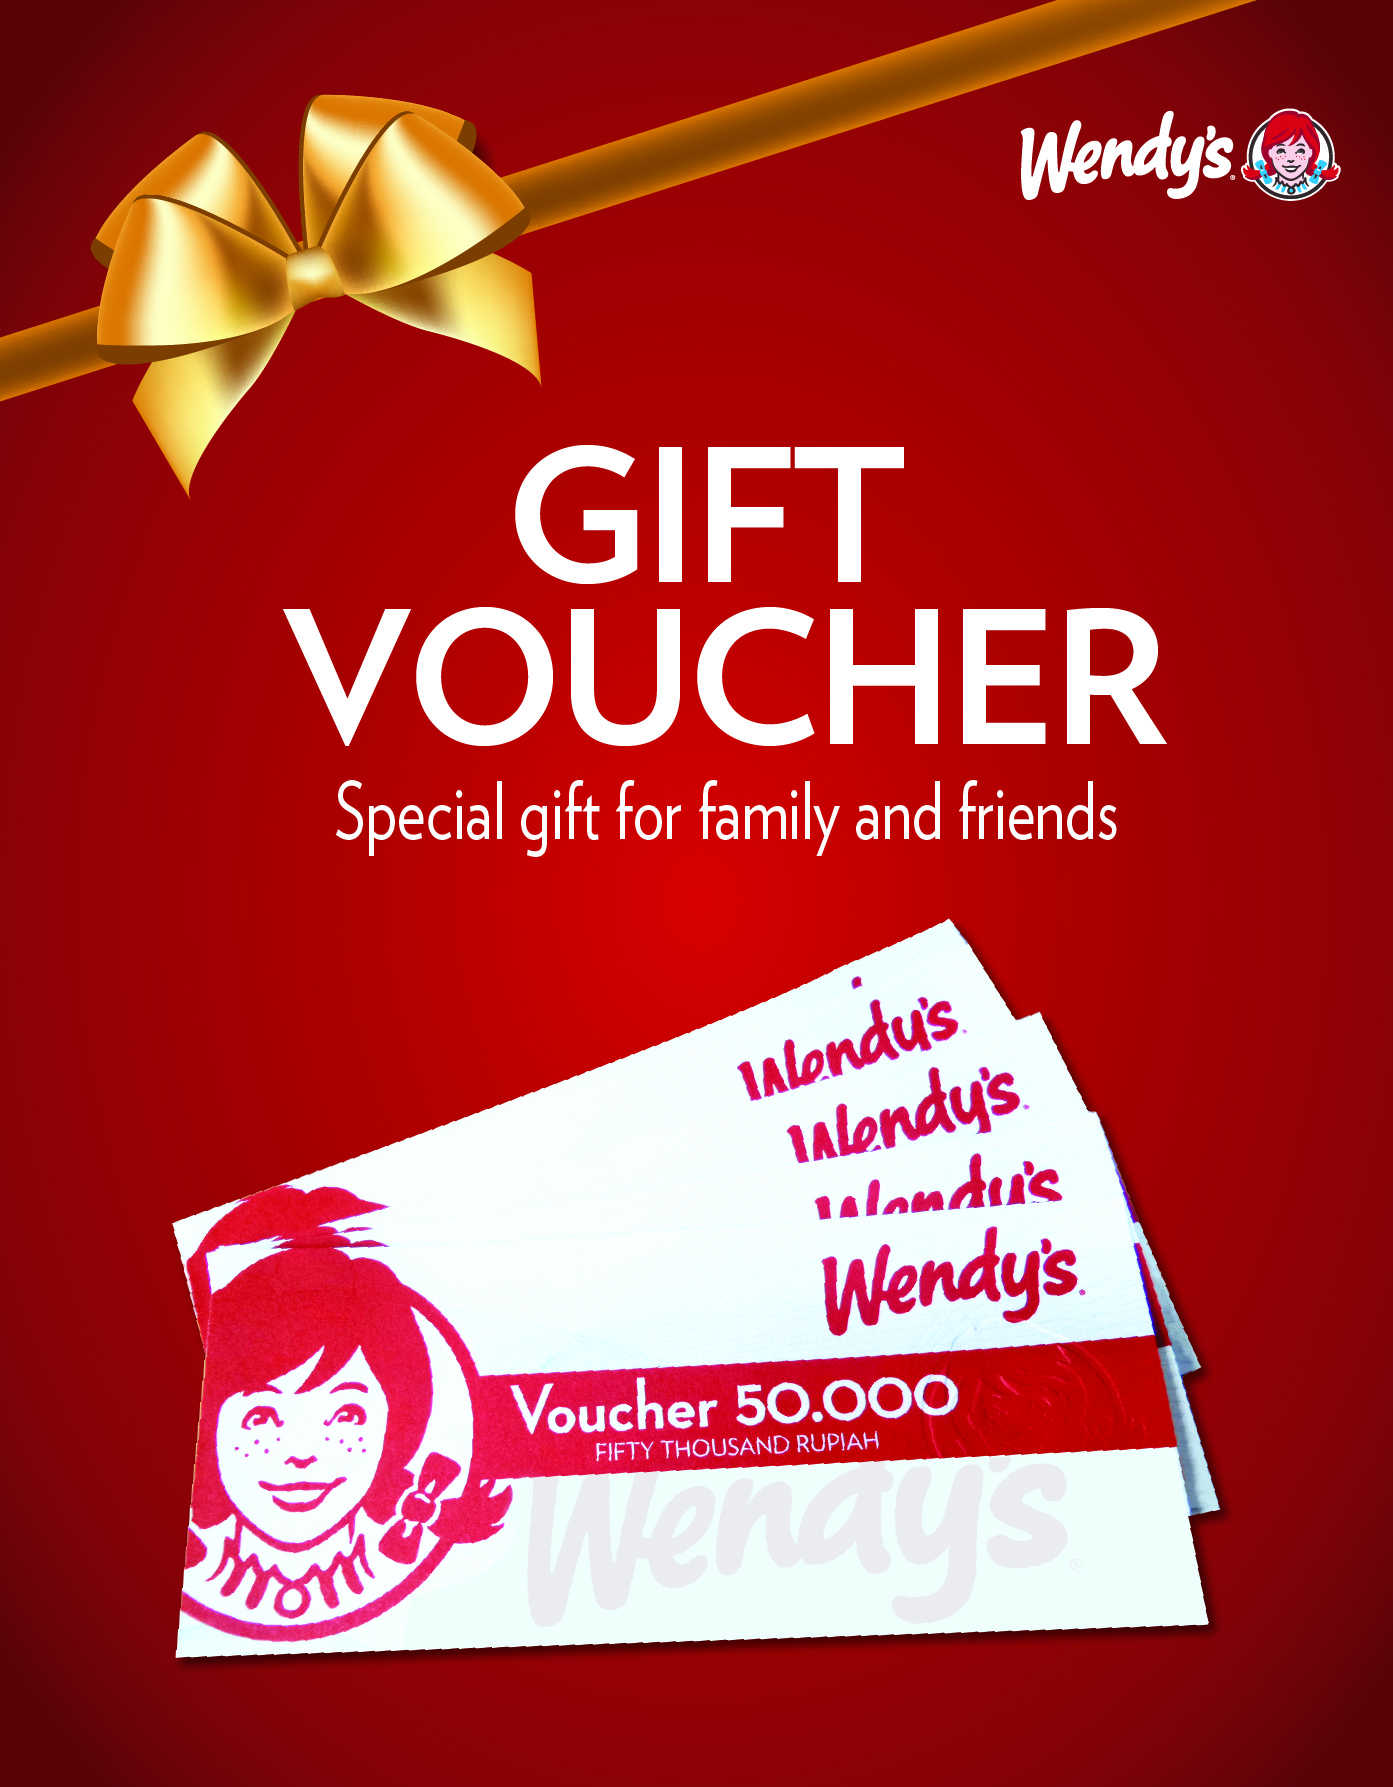 PROMO_WEB_VOUCHER_1393X1787_JUL16-01.jpg